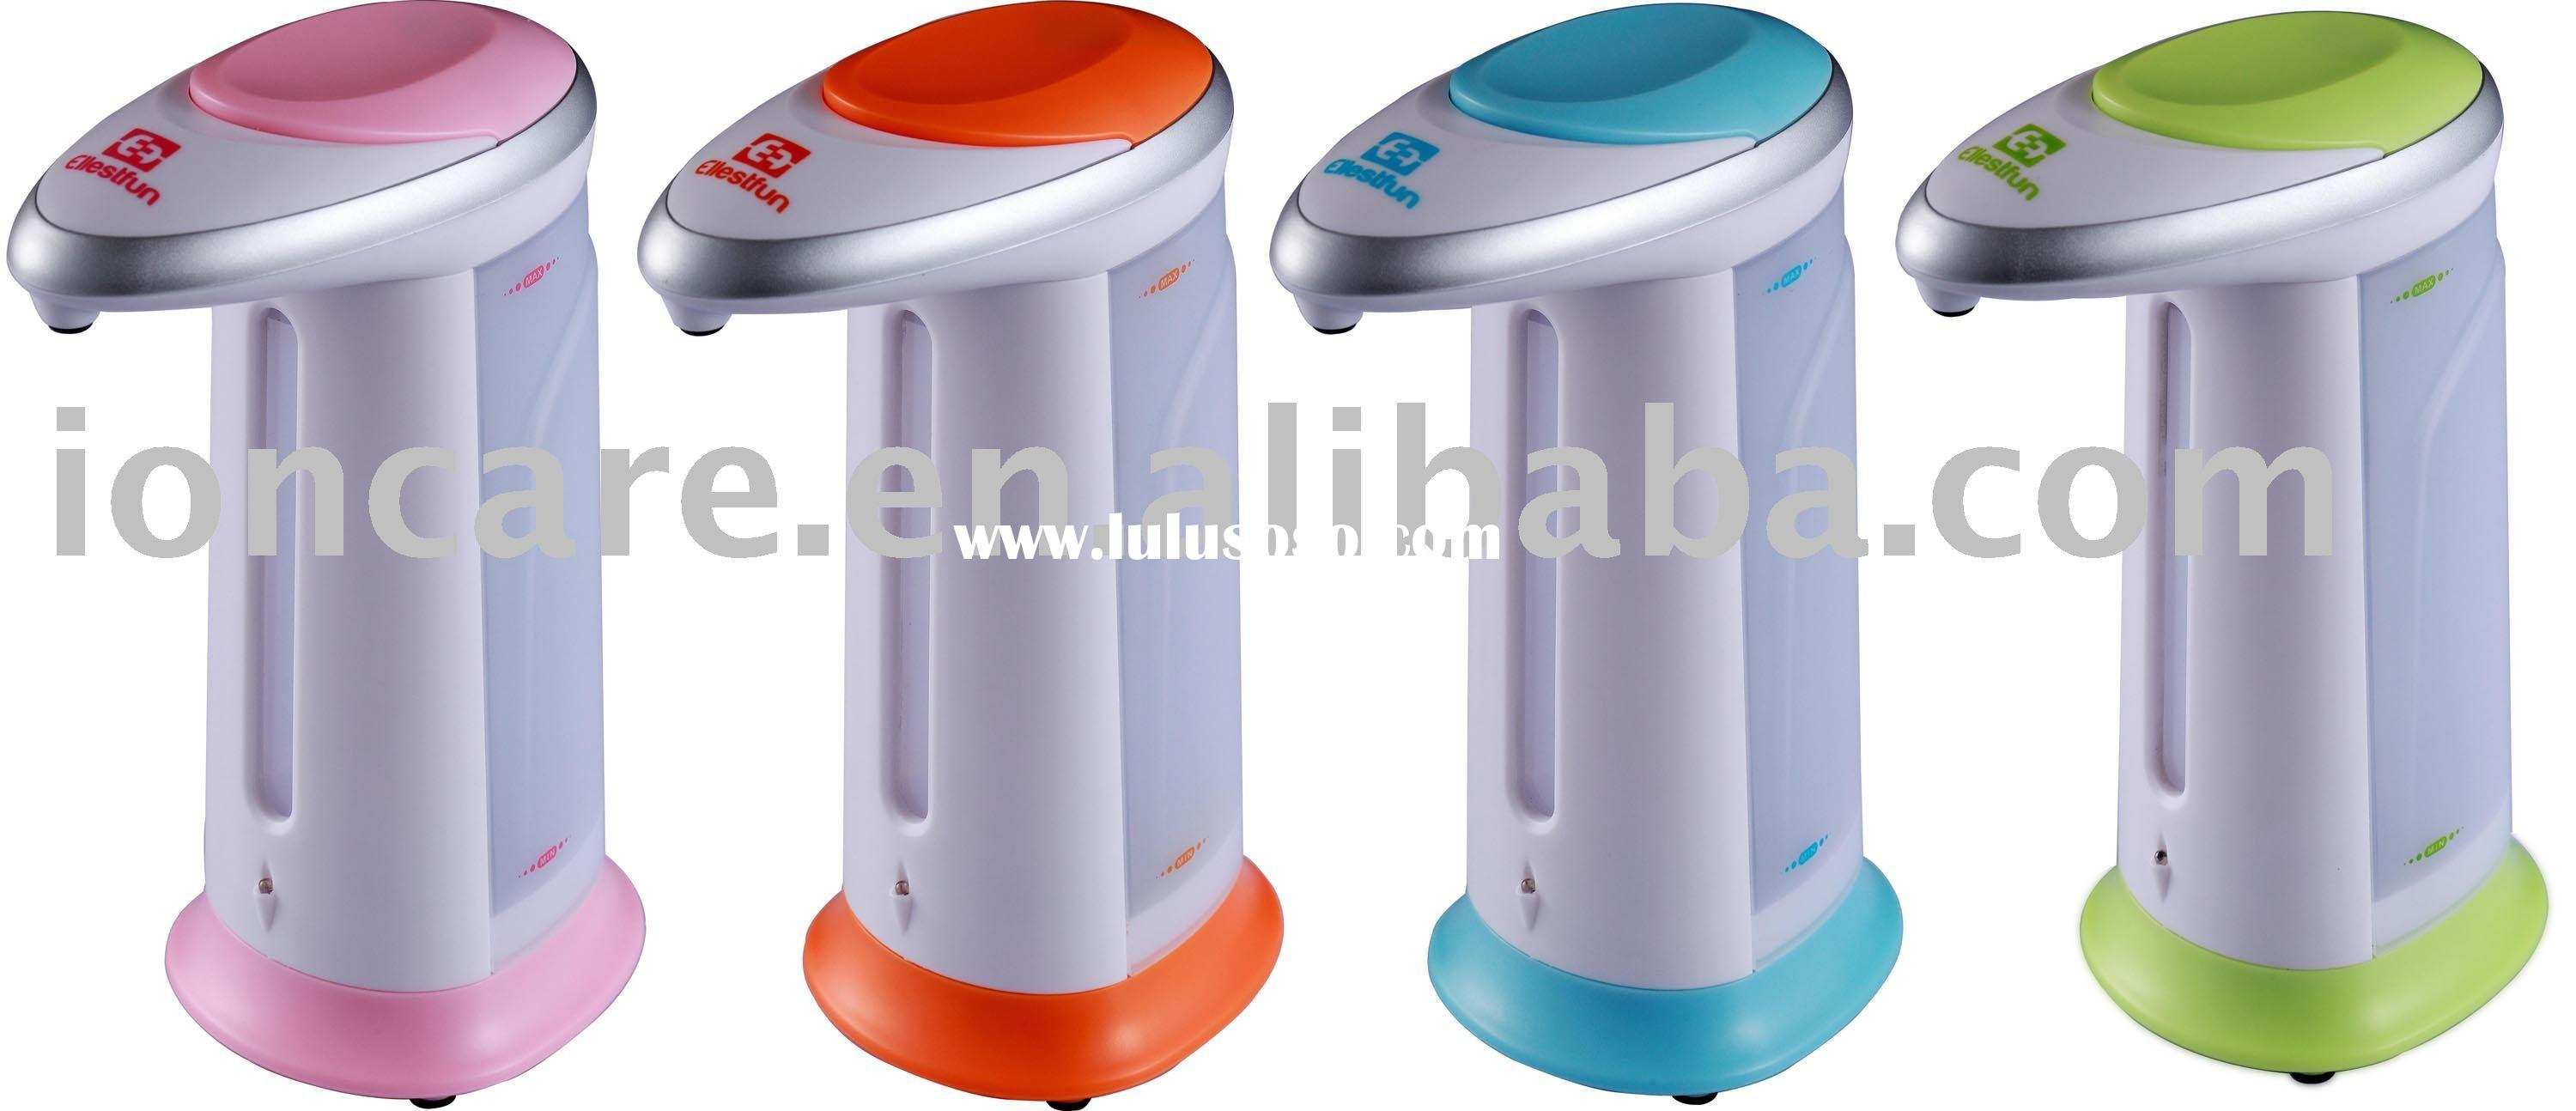 Geniesoap Touchfree Automatic Soap Dispenser For Bathroom Kitchen